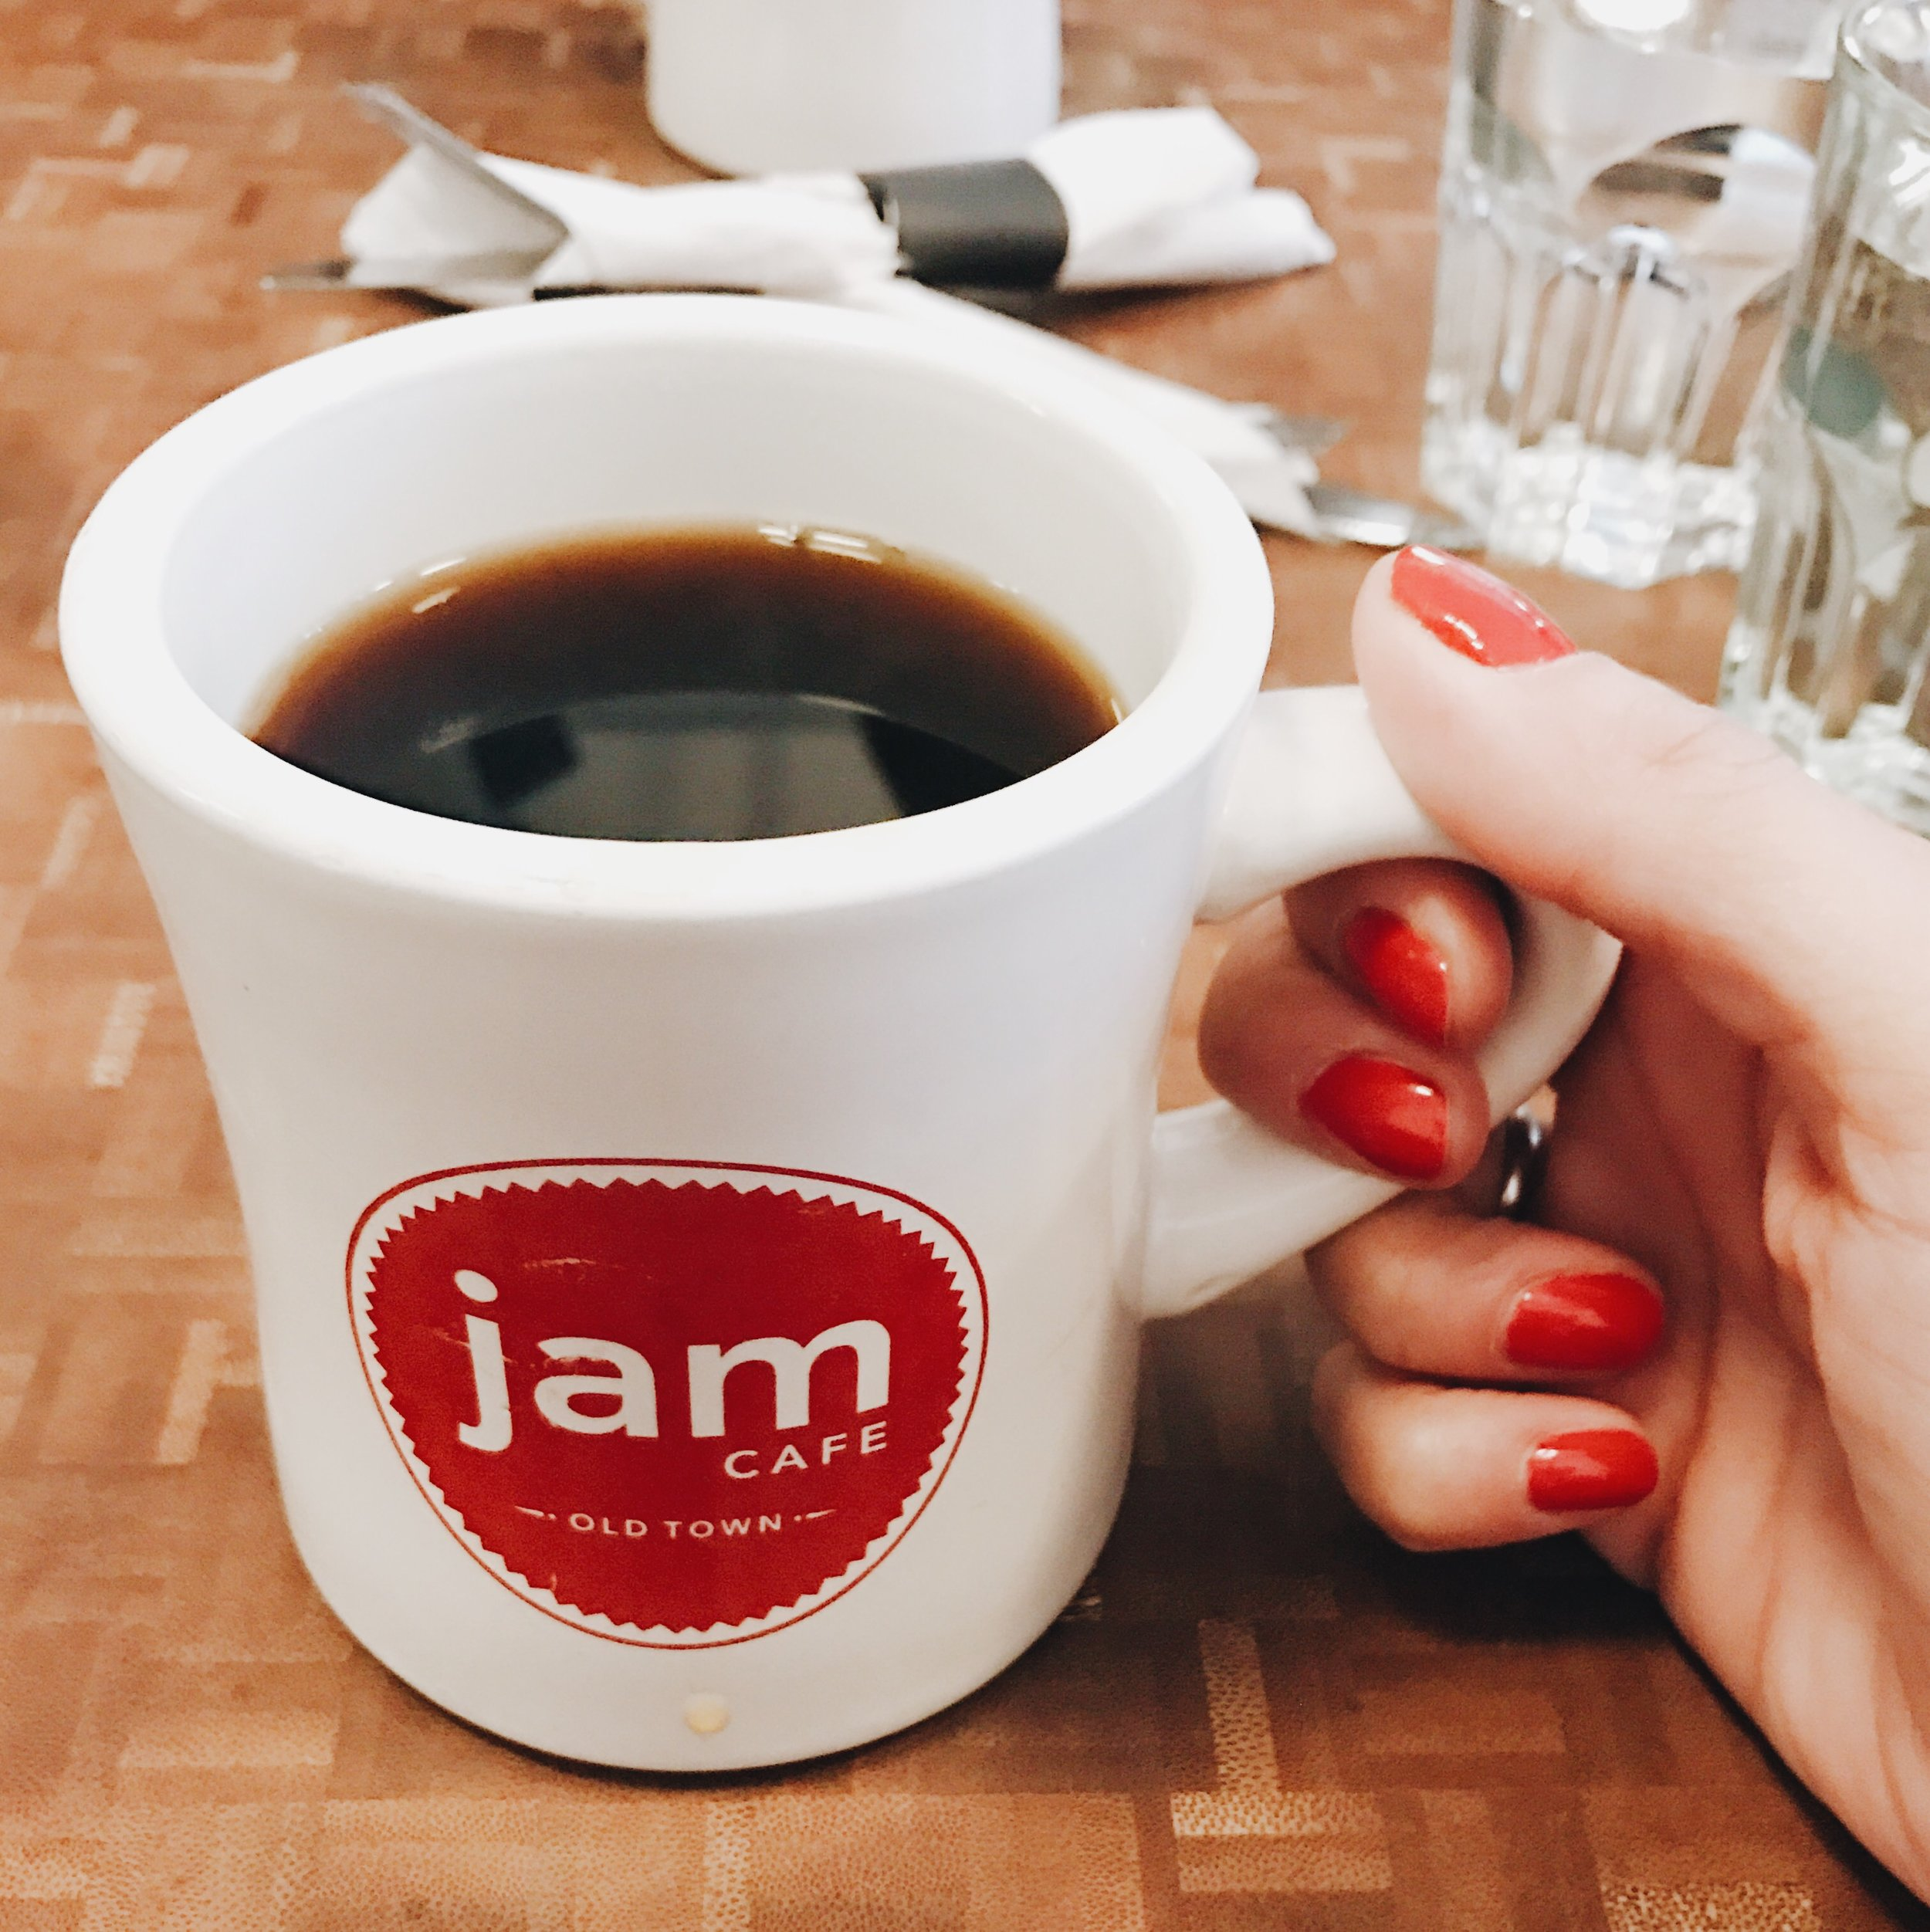 JAM Old Town Cafe, Victoria BC, Nyla Free Designs Inc